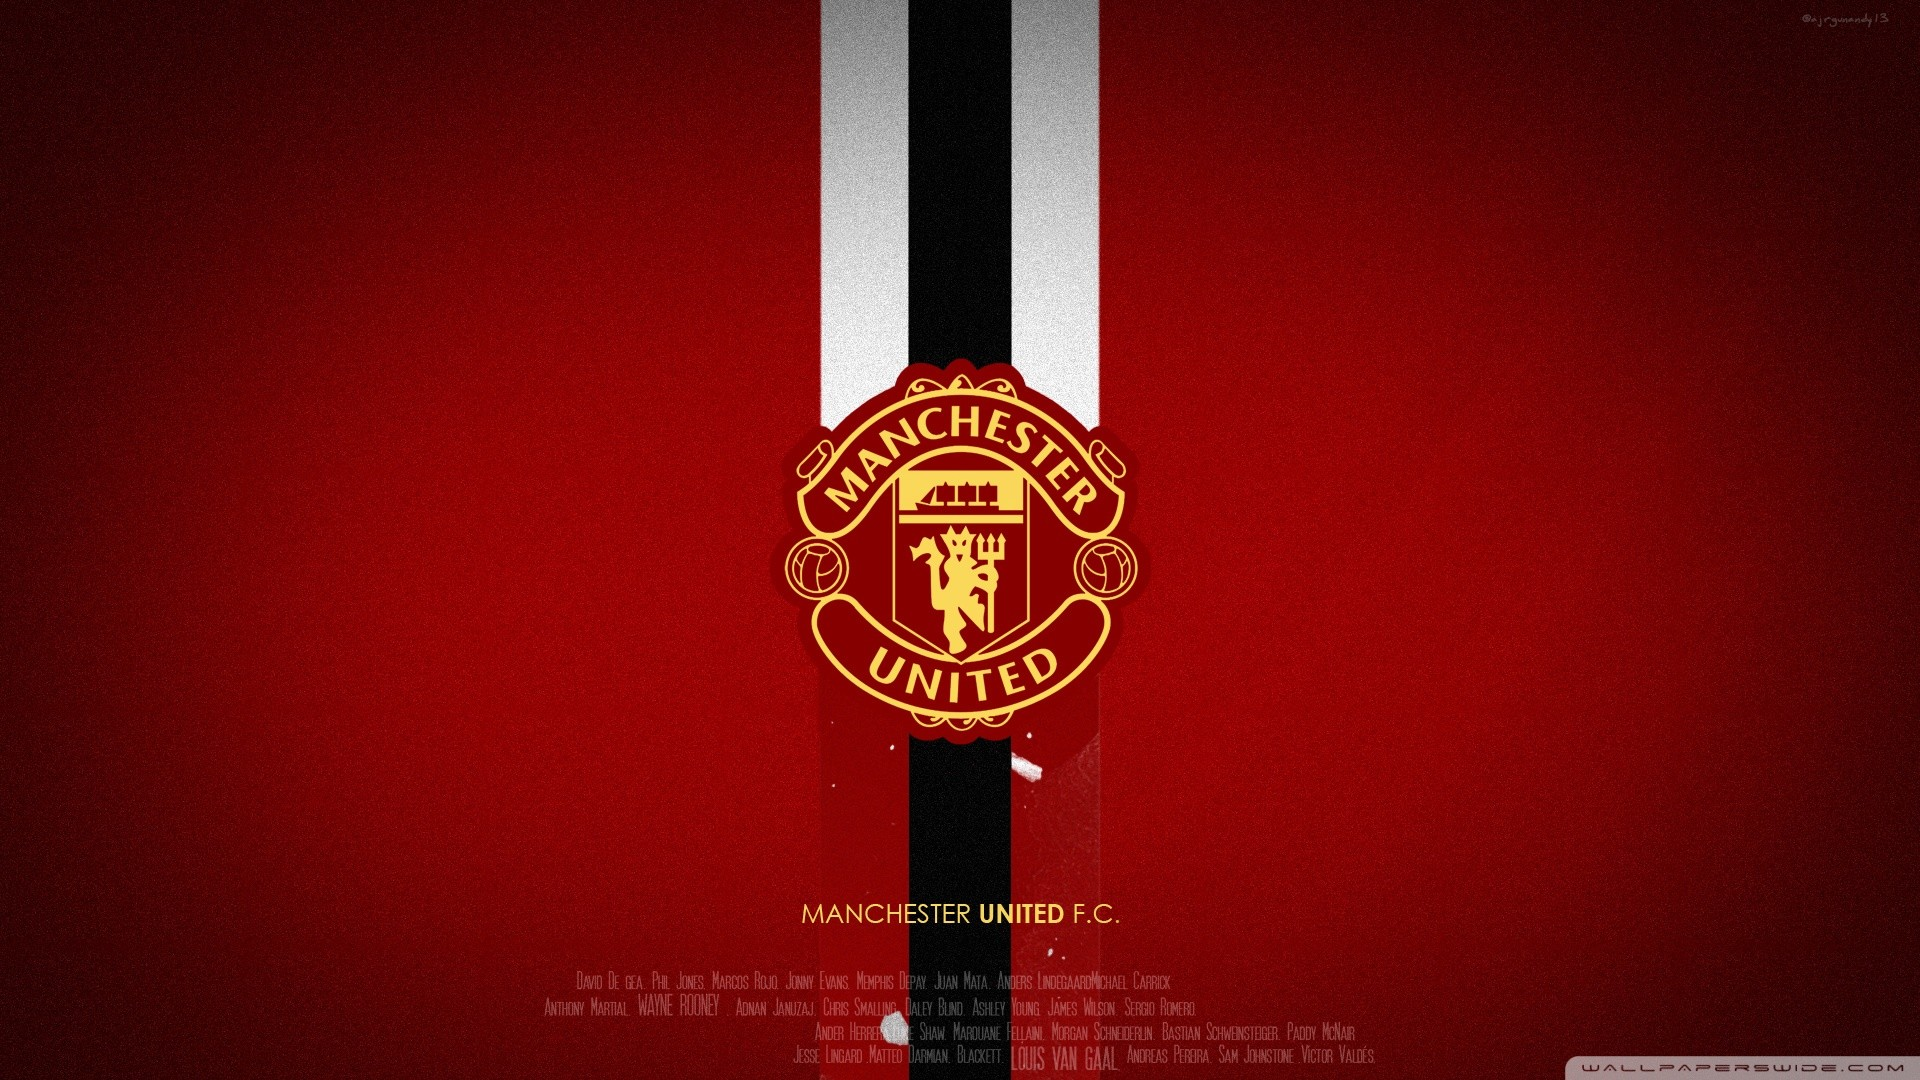 Manchester United Wallpaper Iphone X Football Hd Wallpapers 1080p 83 Images